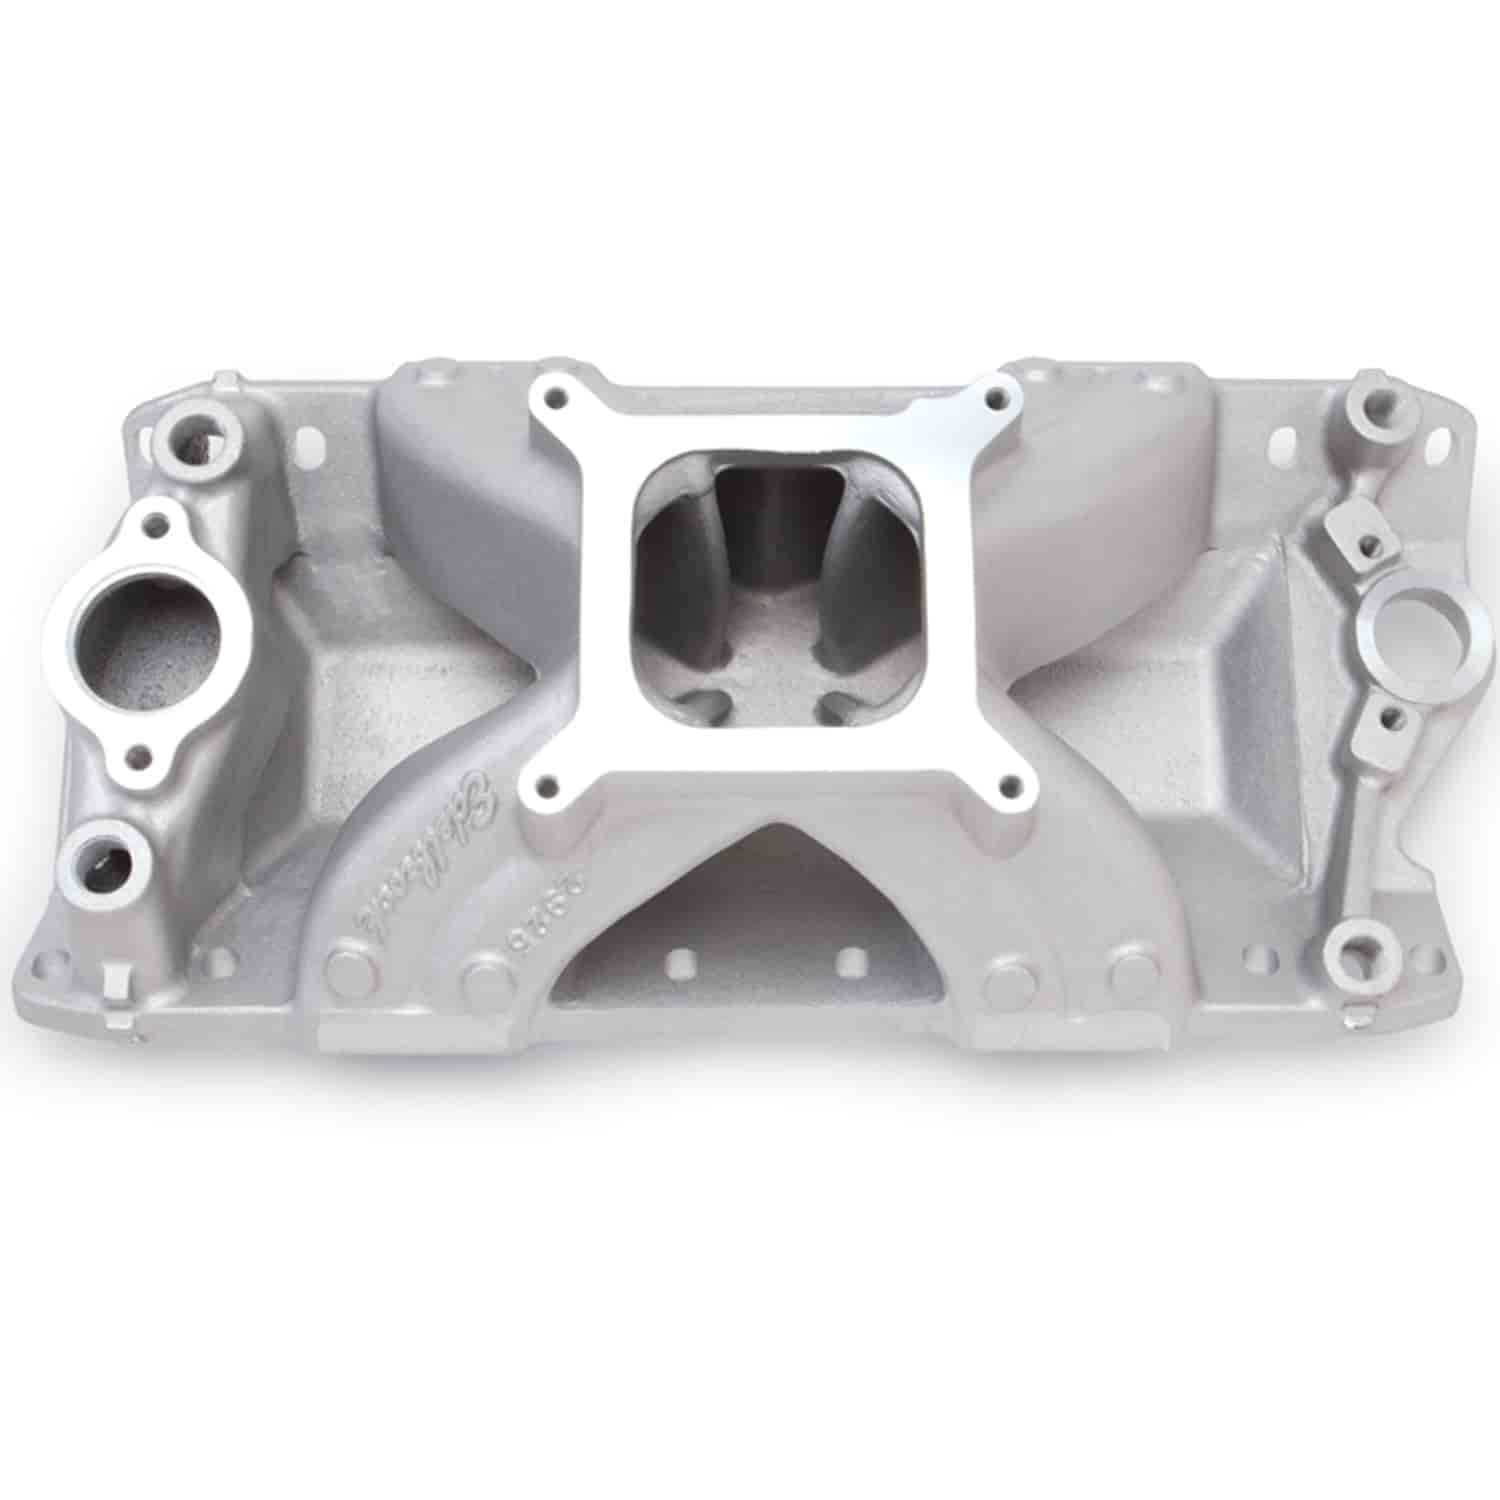 Edelbrock 2925 - Edelbrock Victor Series Intake Manifolds for Small Block Chevy